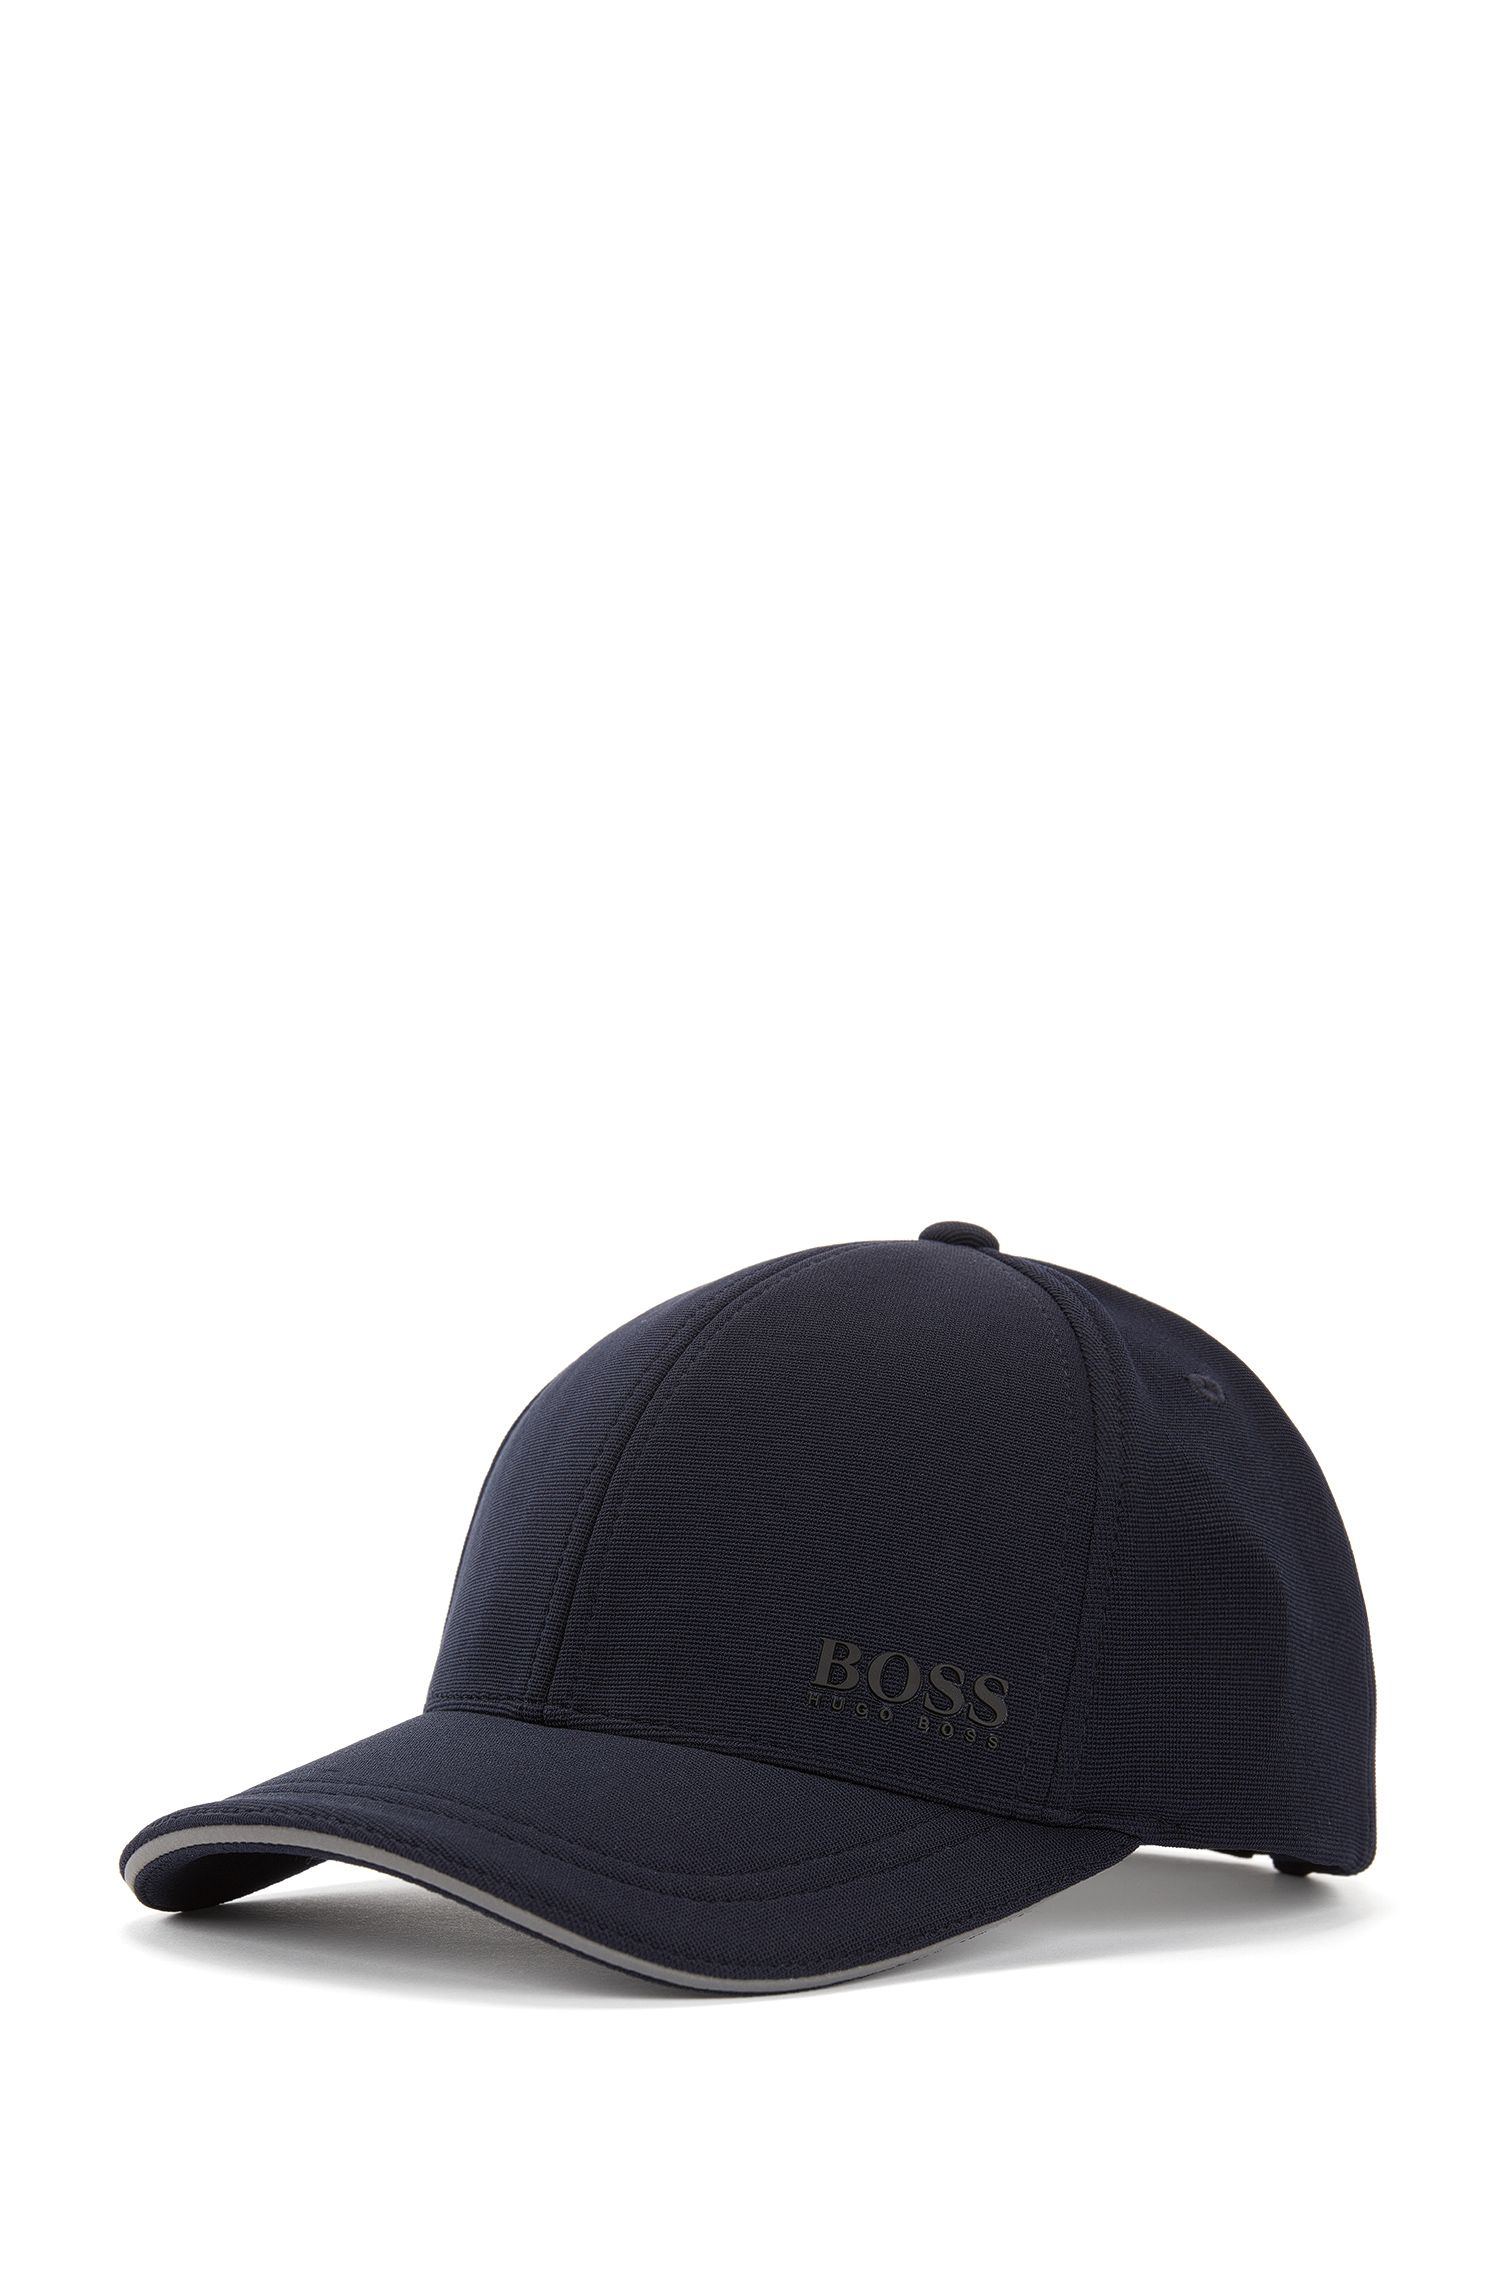 Baseball cap in performance fabric